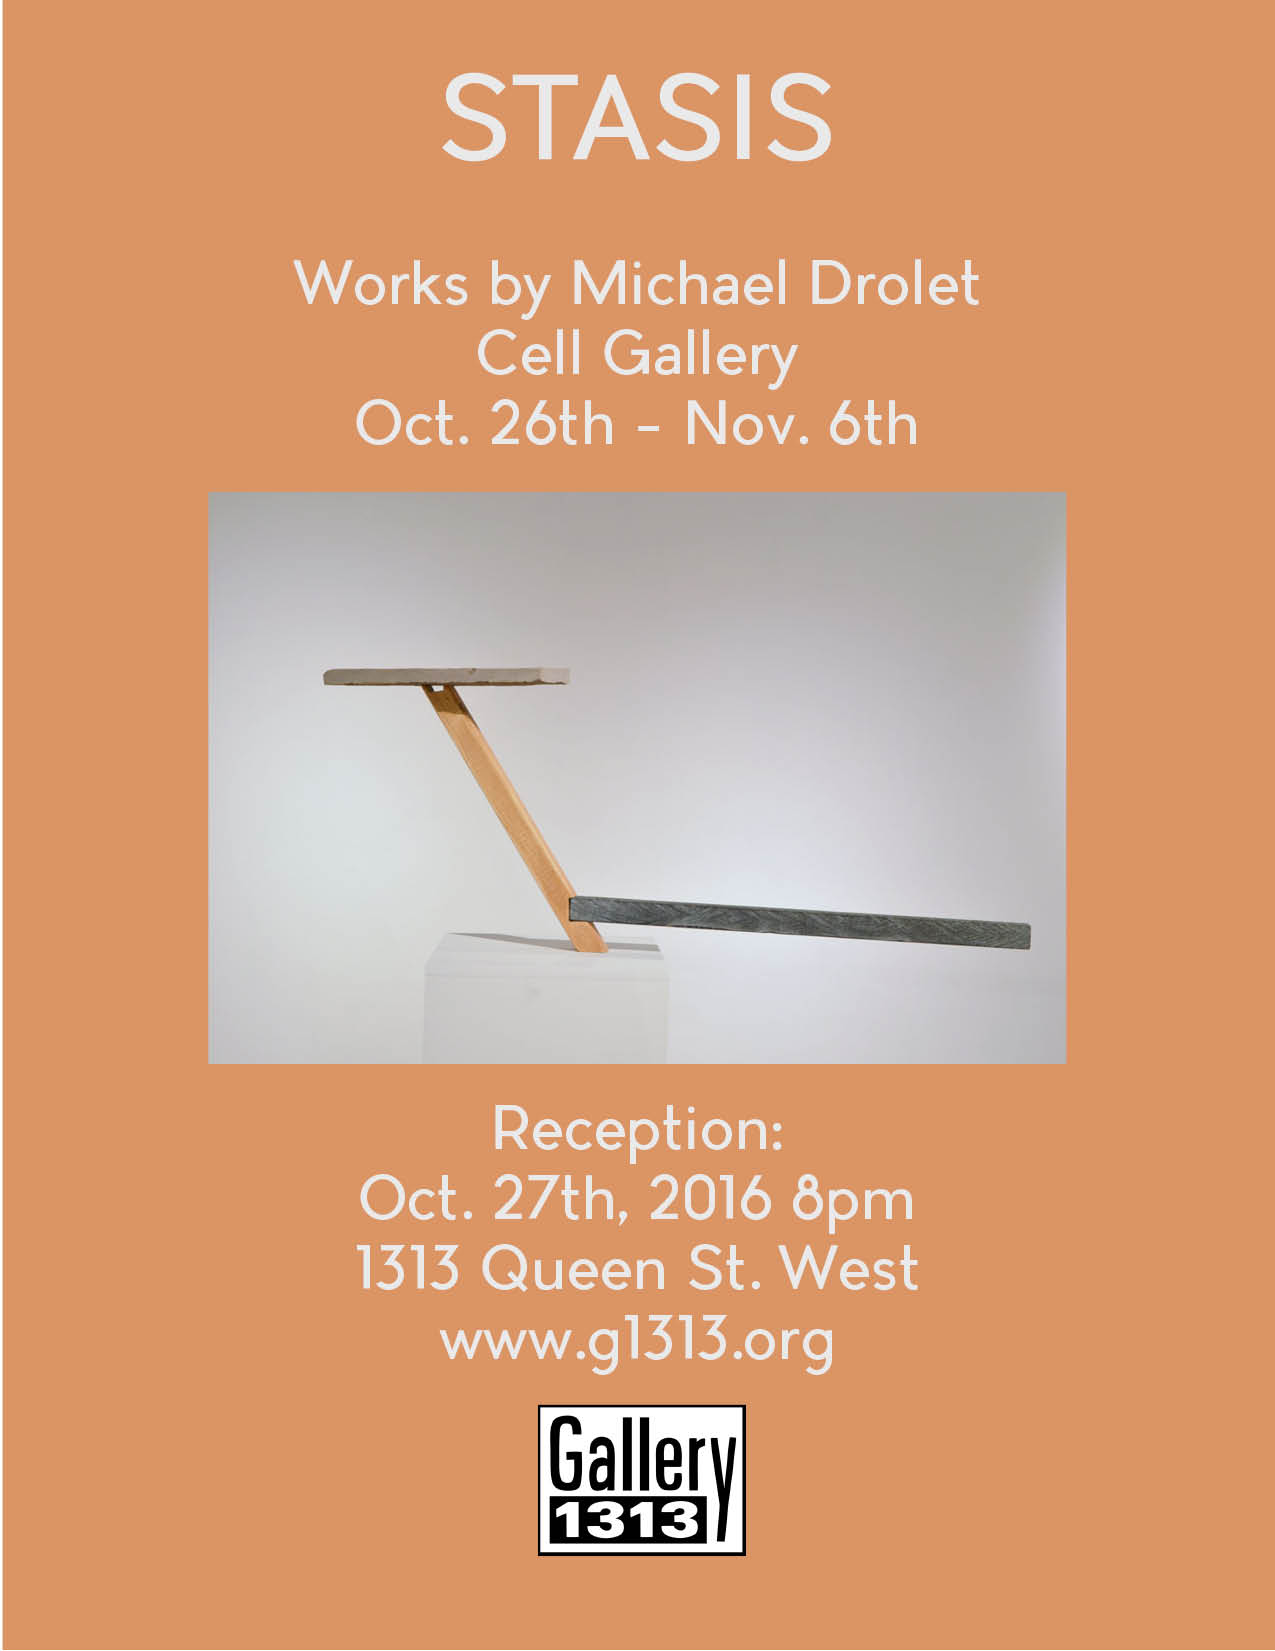 Stasis: Works by Michael Drolet